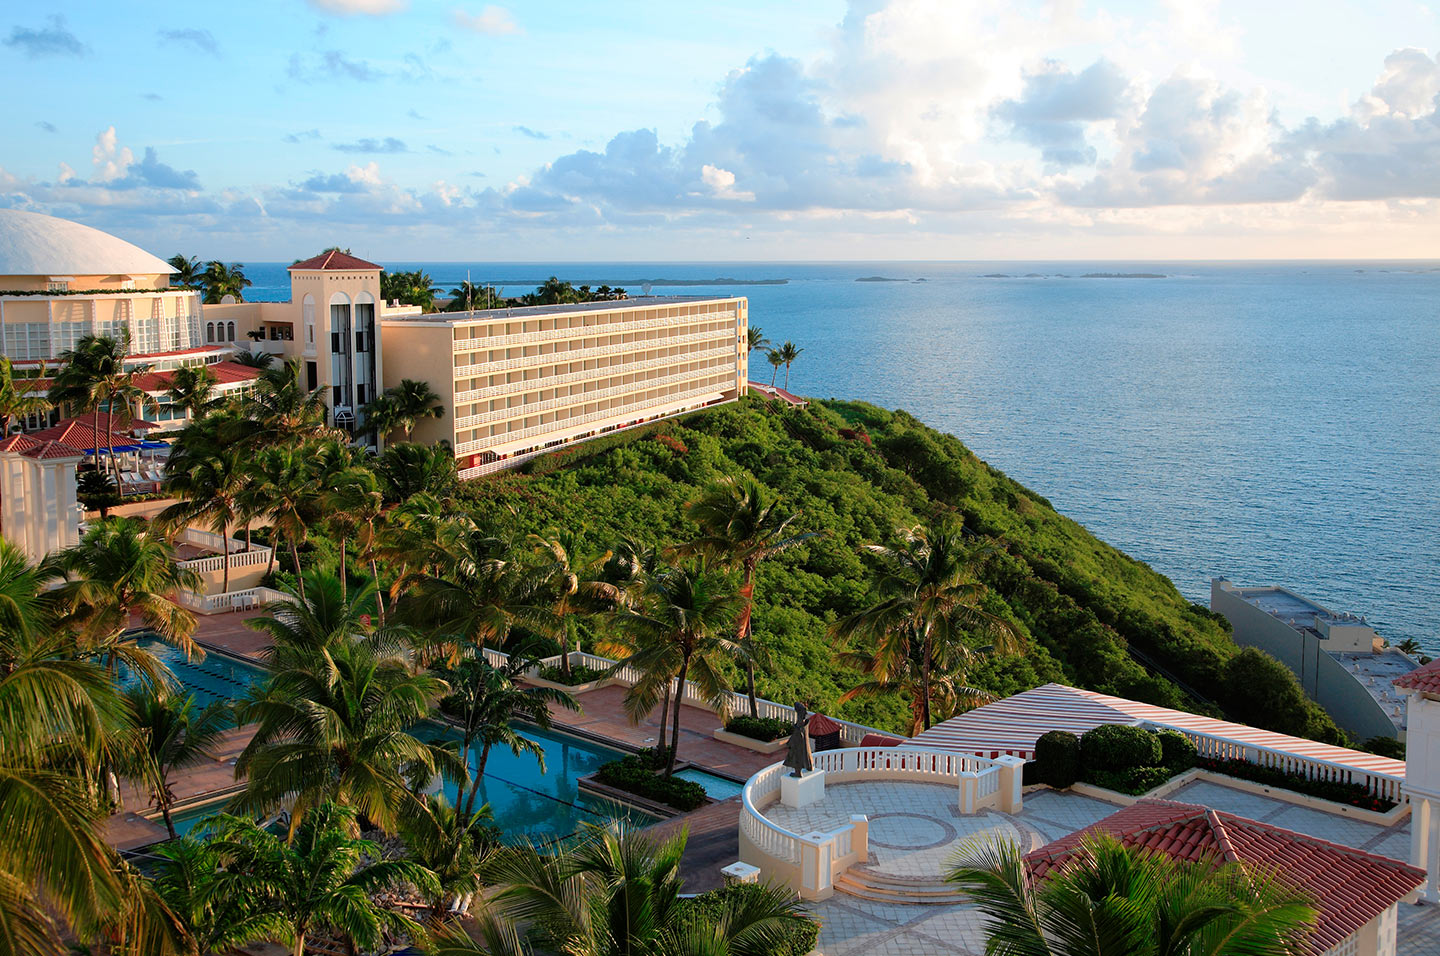 IEEE AP-S 2016 in Puerto Rico, June 26 - July 1 2016